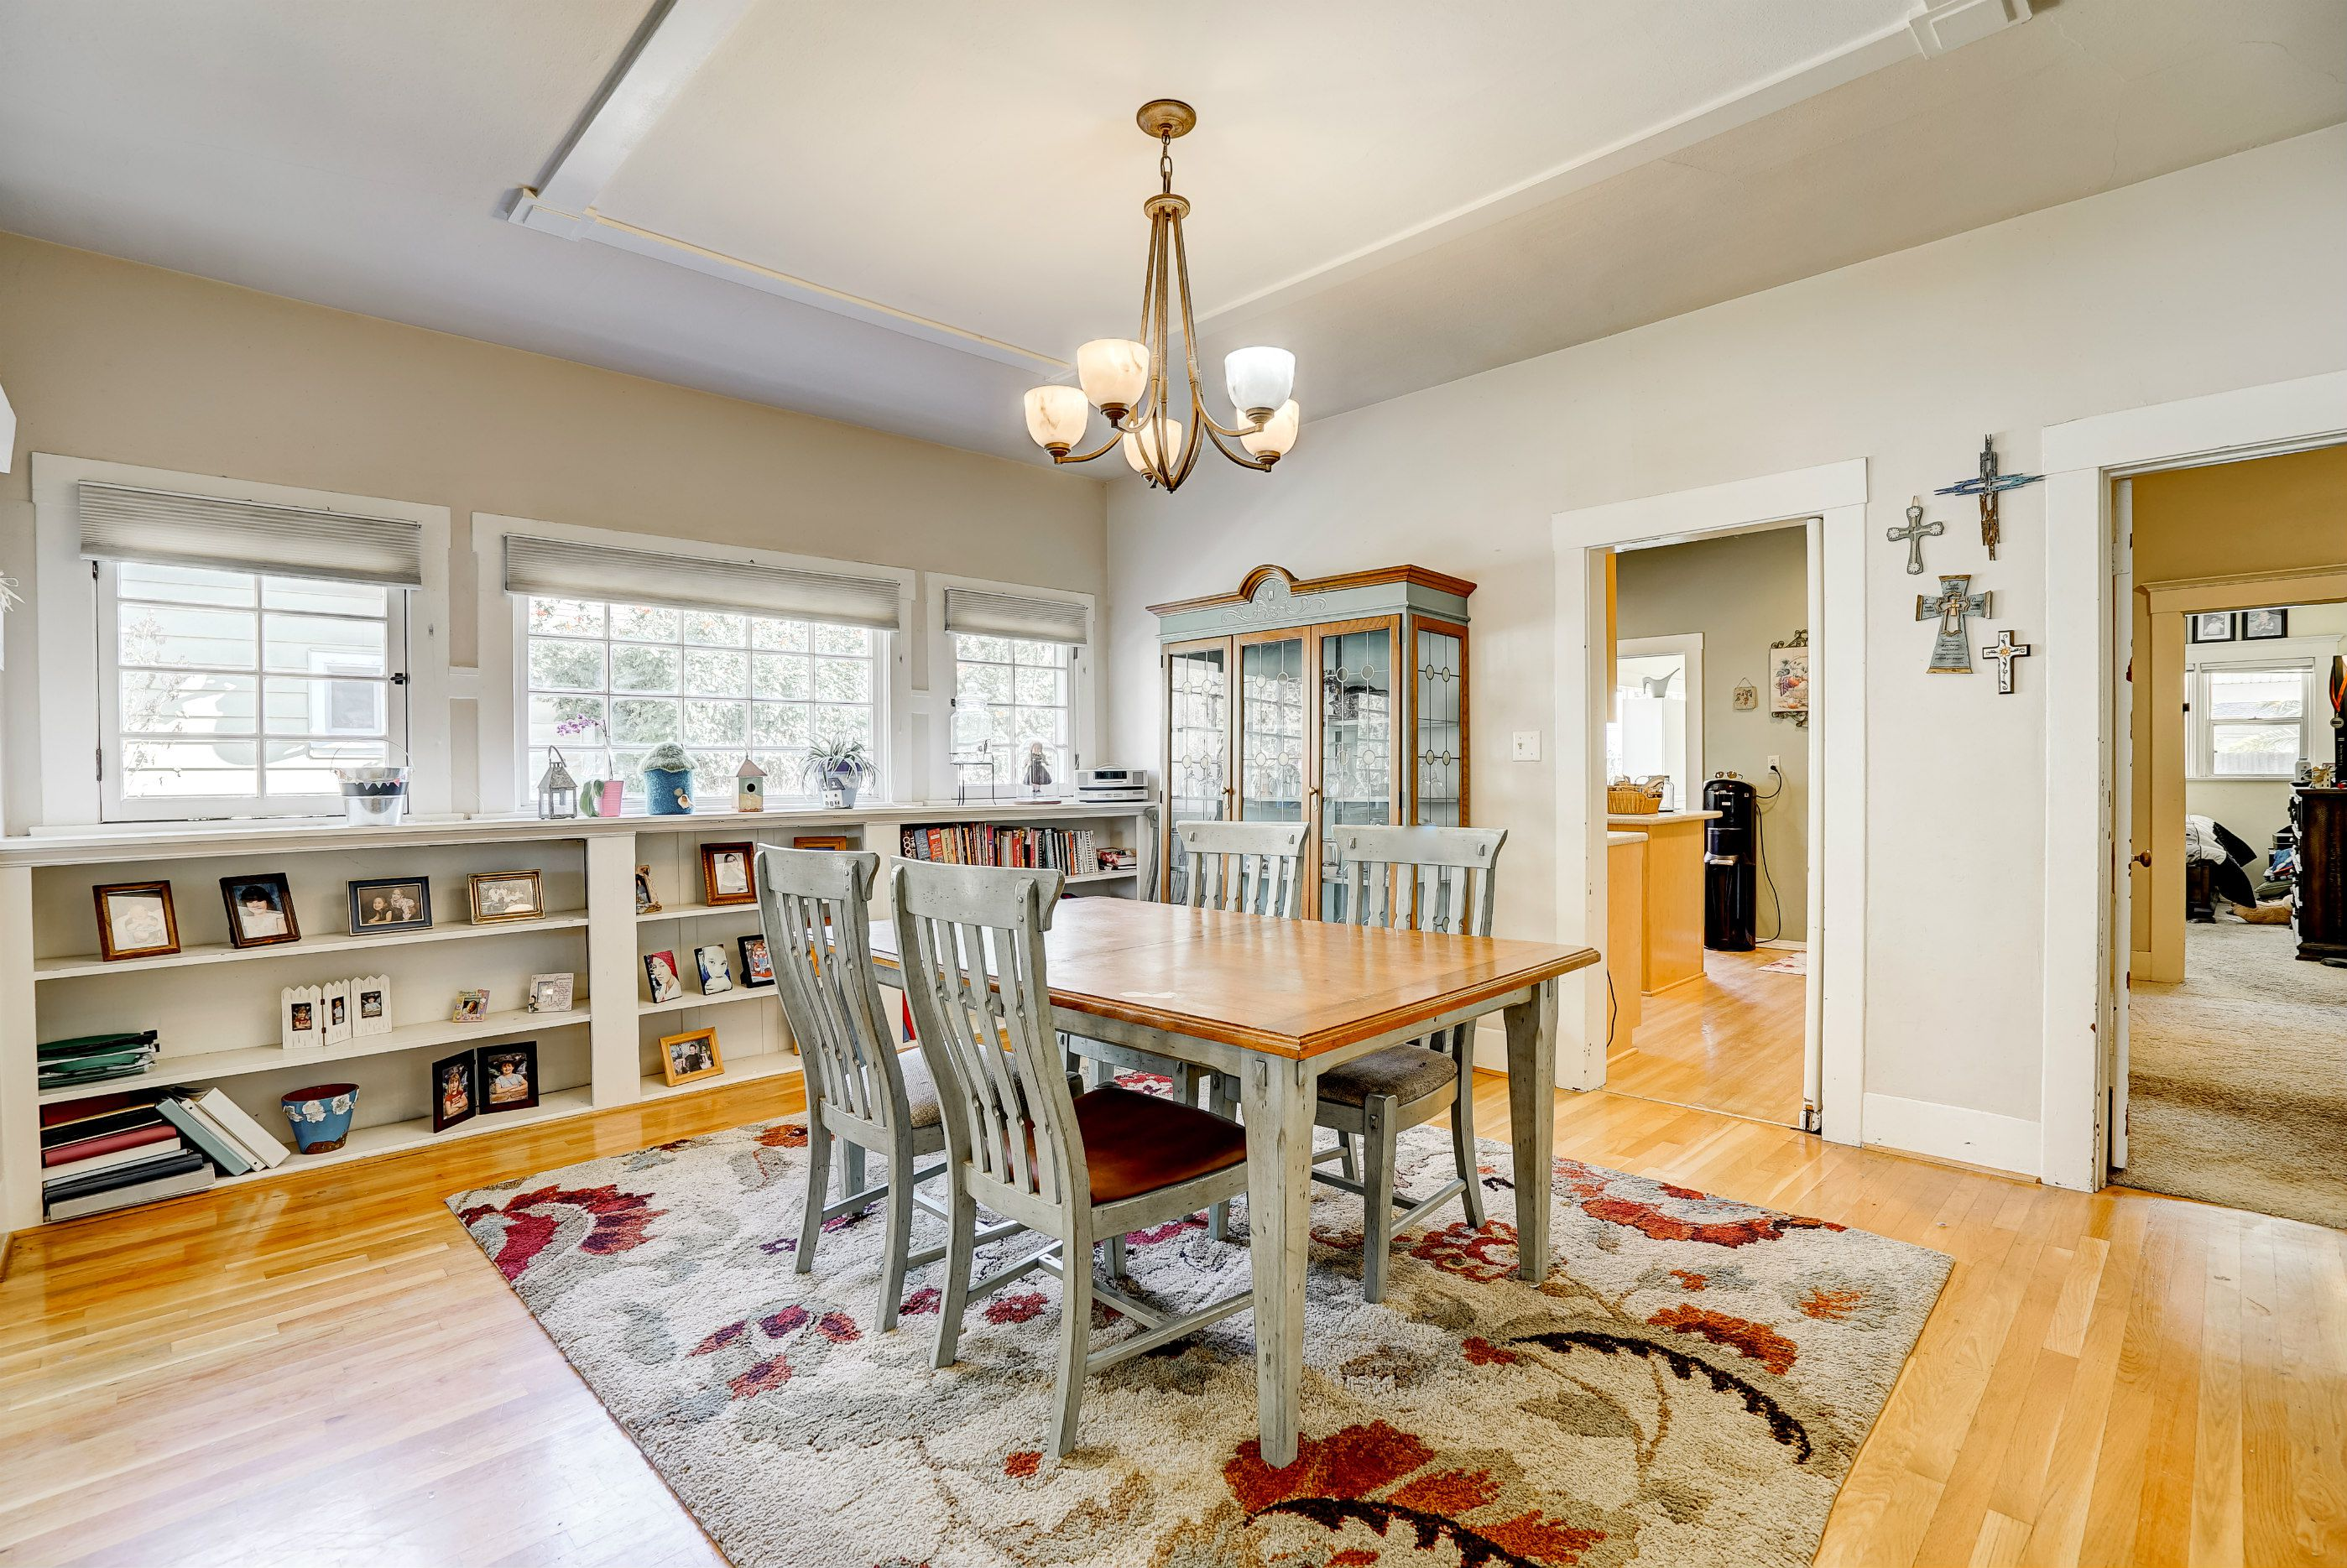 Large formal dining room with built-in bookshelves and original hutch on inside wall.